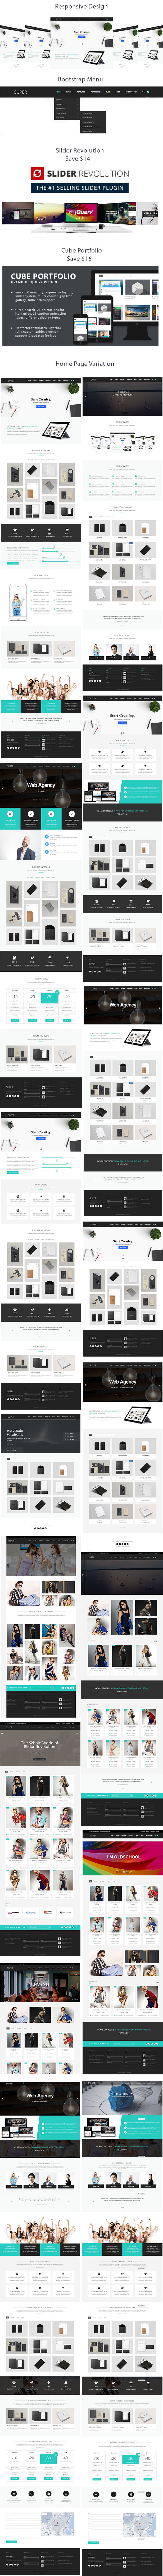 Super Multipurpose HTML5 Template - 1